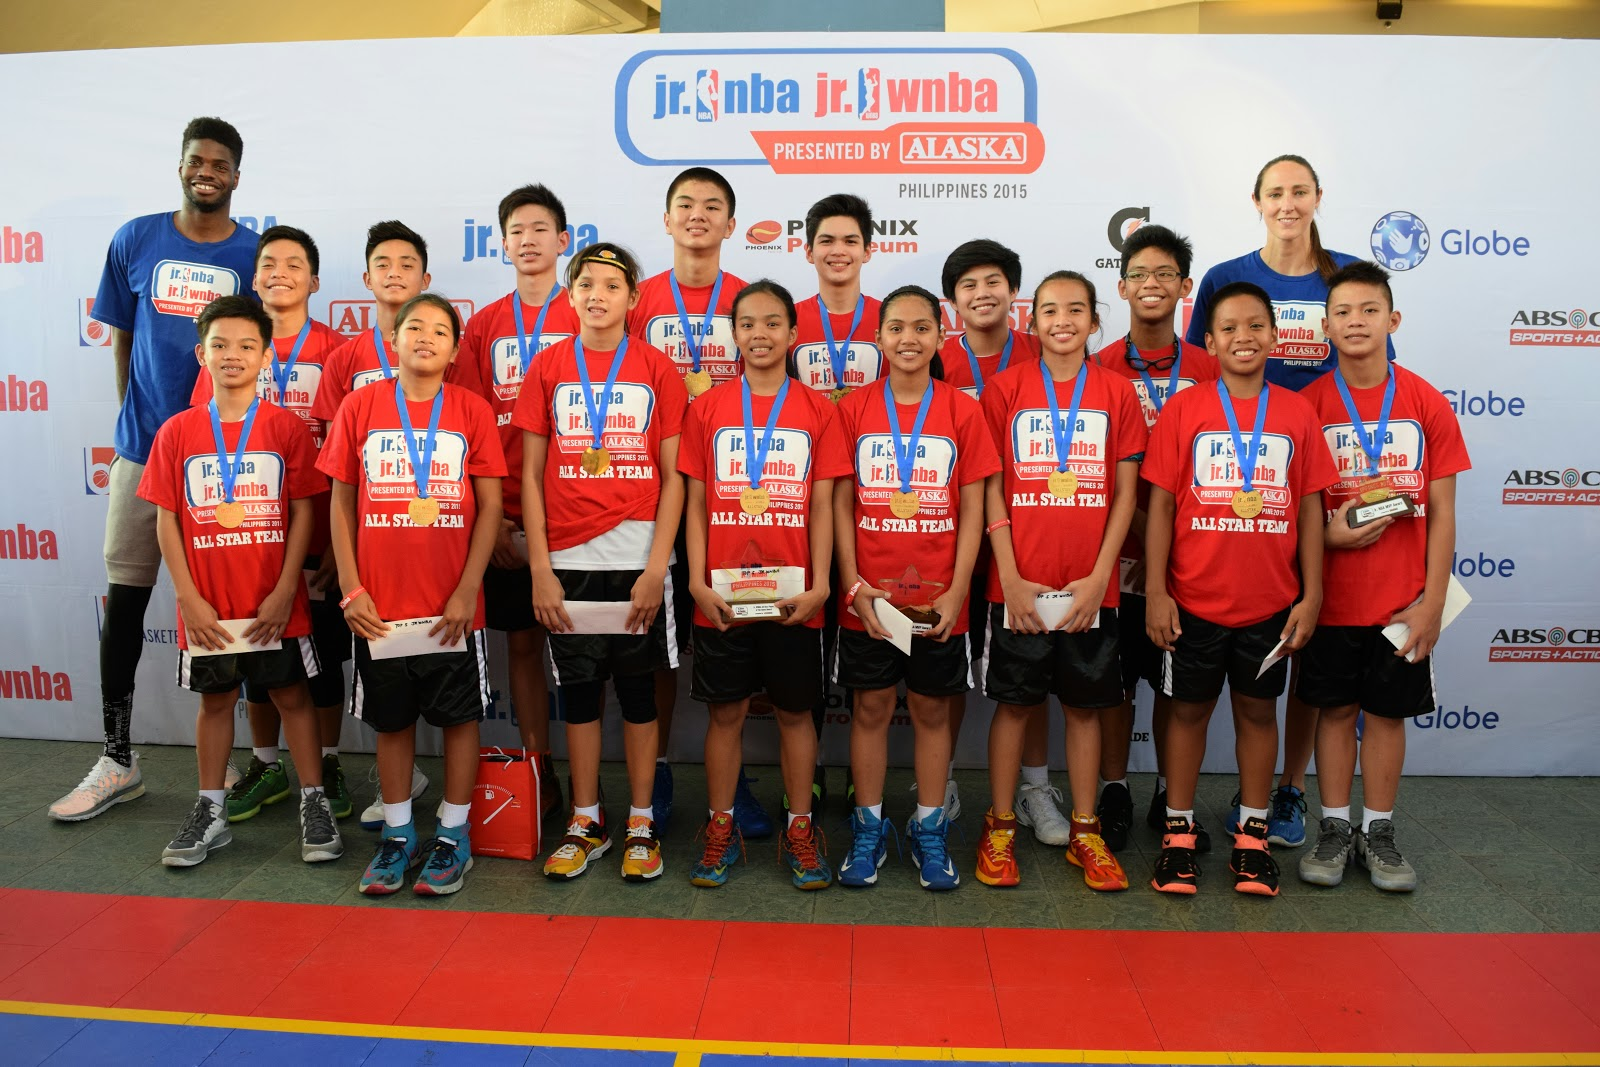 10 Boys, 5 Girls Top 2015 Jr. NBA/Jr. WNBA National Training Camp